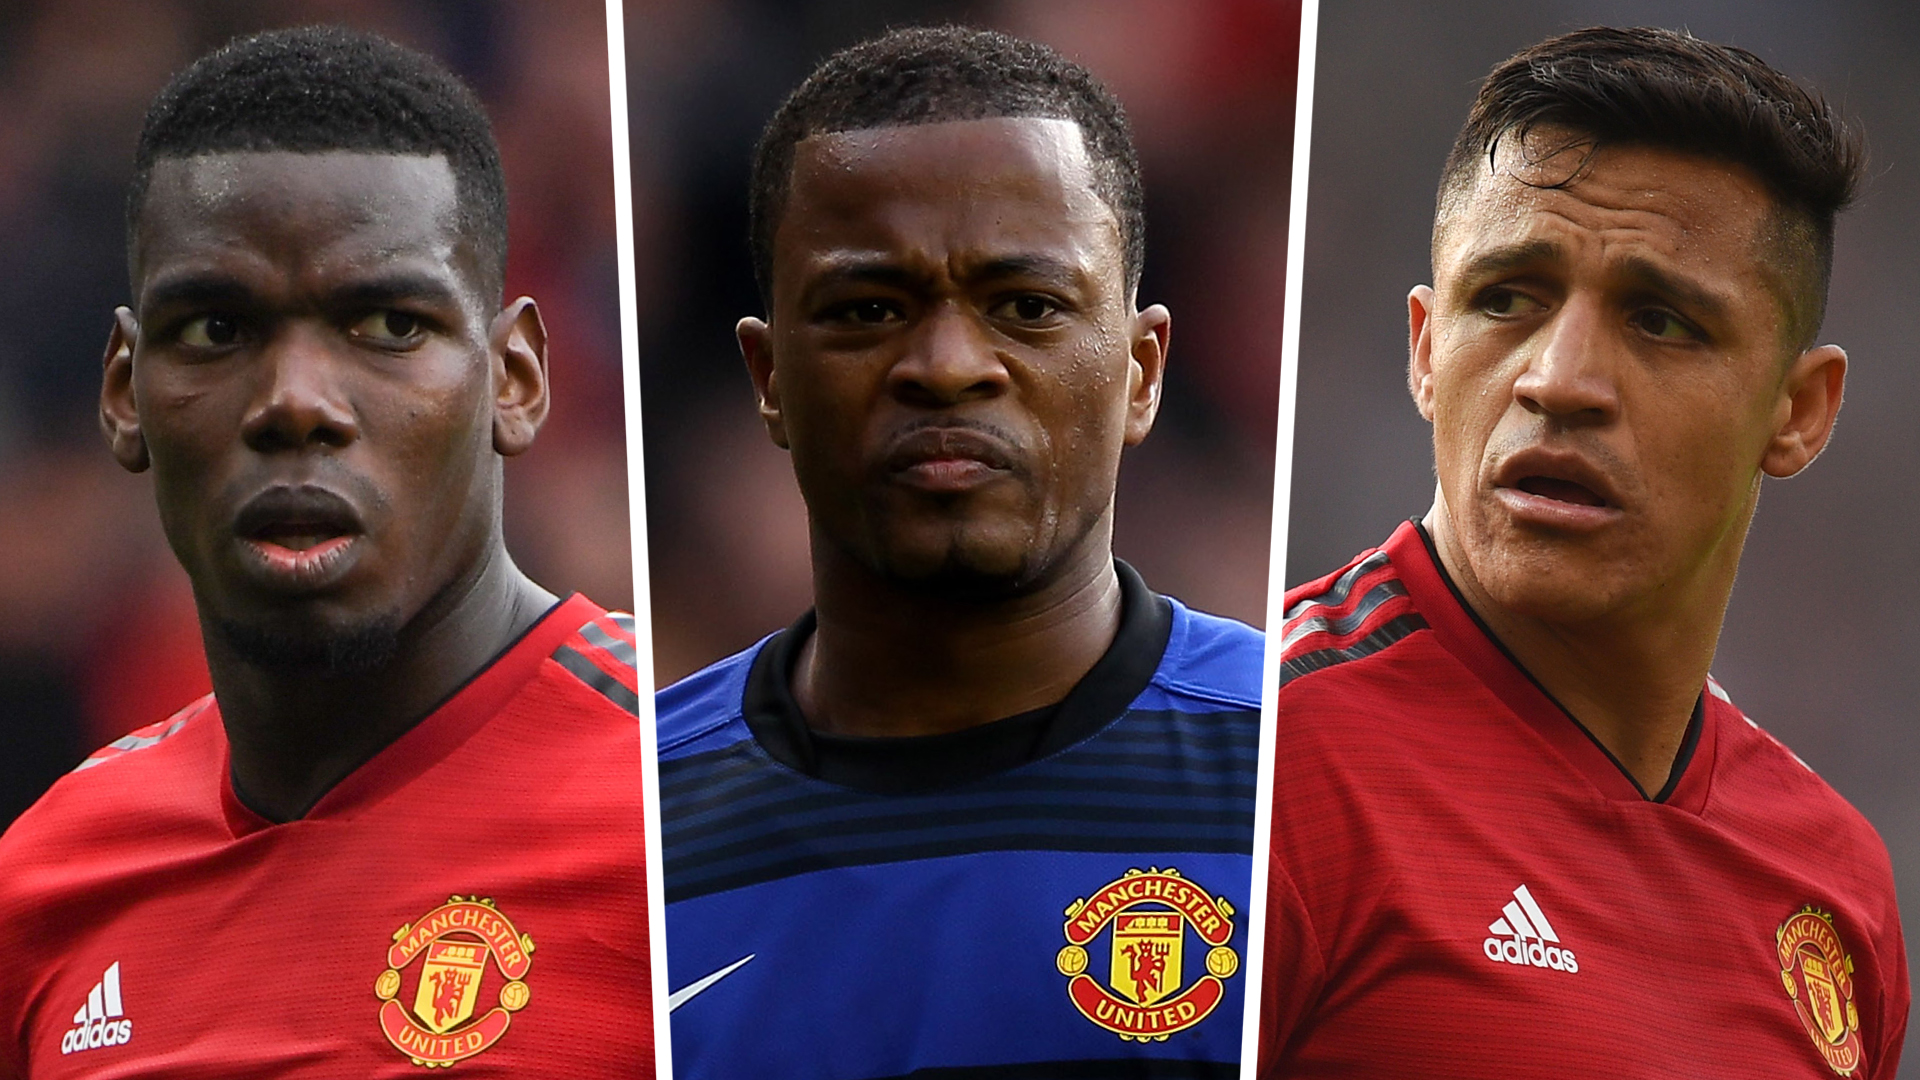 9770a5fb2 Evra expects Pogba to leave Man Utd   suggests Alexis only joined for the  money